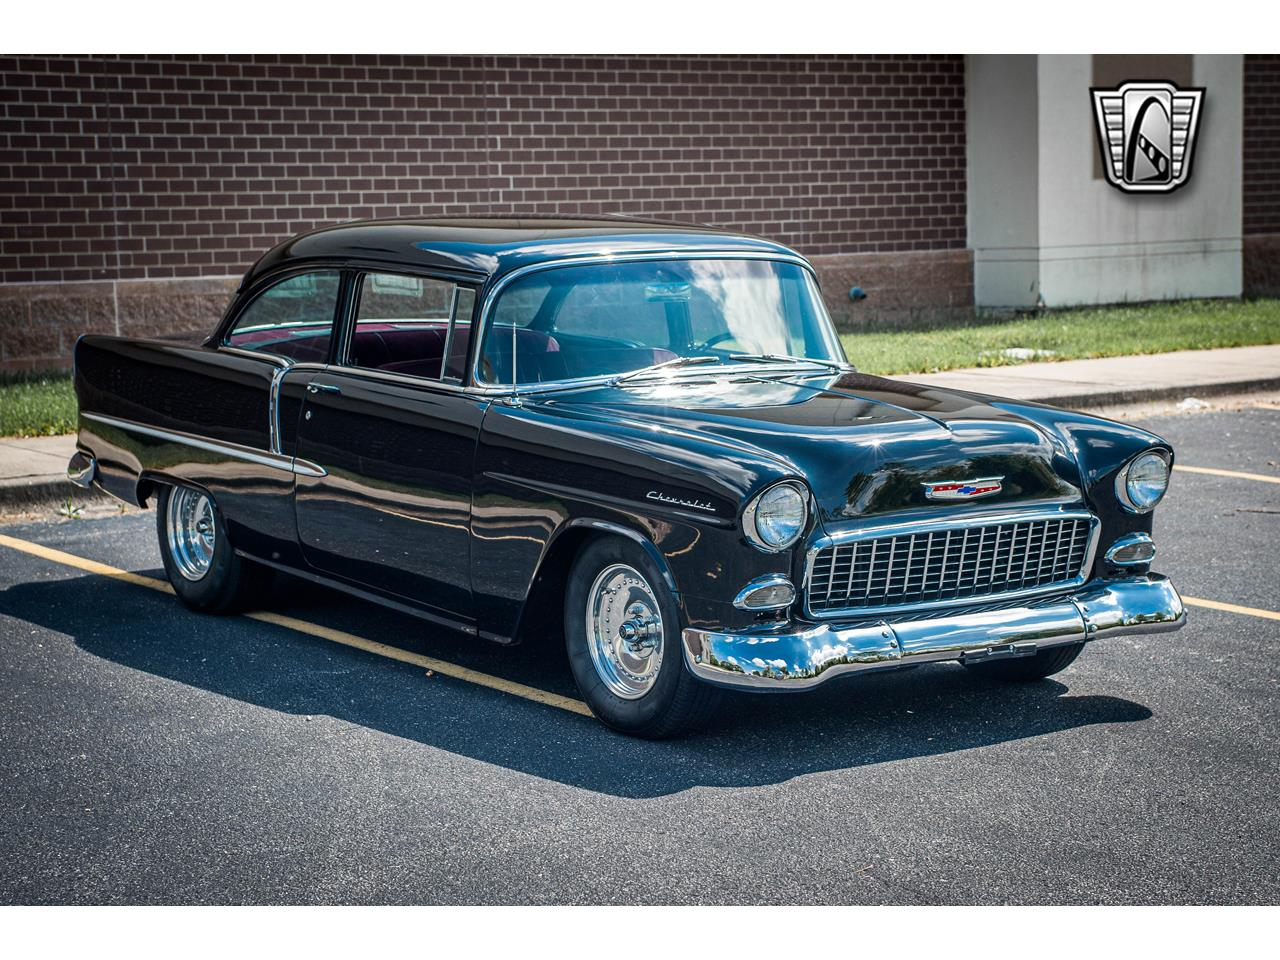 Large Picture of '55 Chevrolet Bel Air located in Illinois Offered by Gateway Classic Cars - St. Louis - QB9F